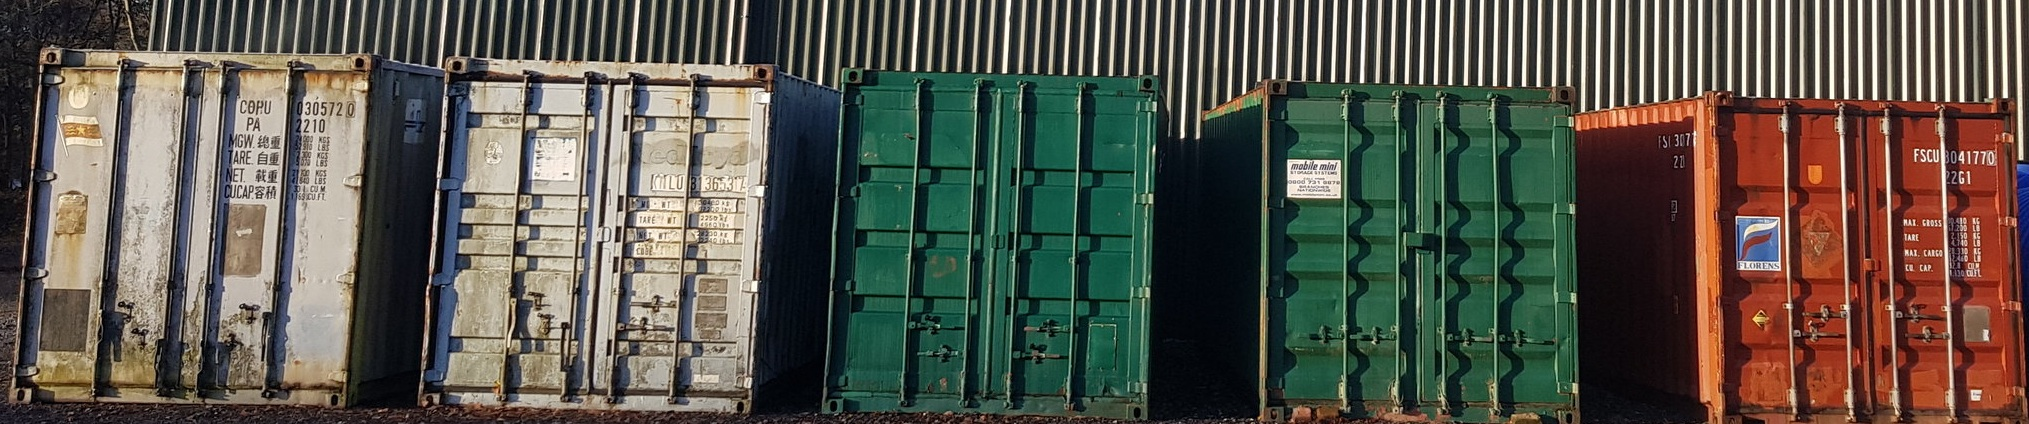 Shipping+containers.jpg